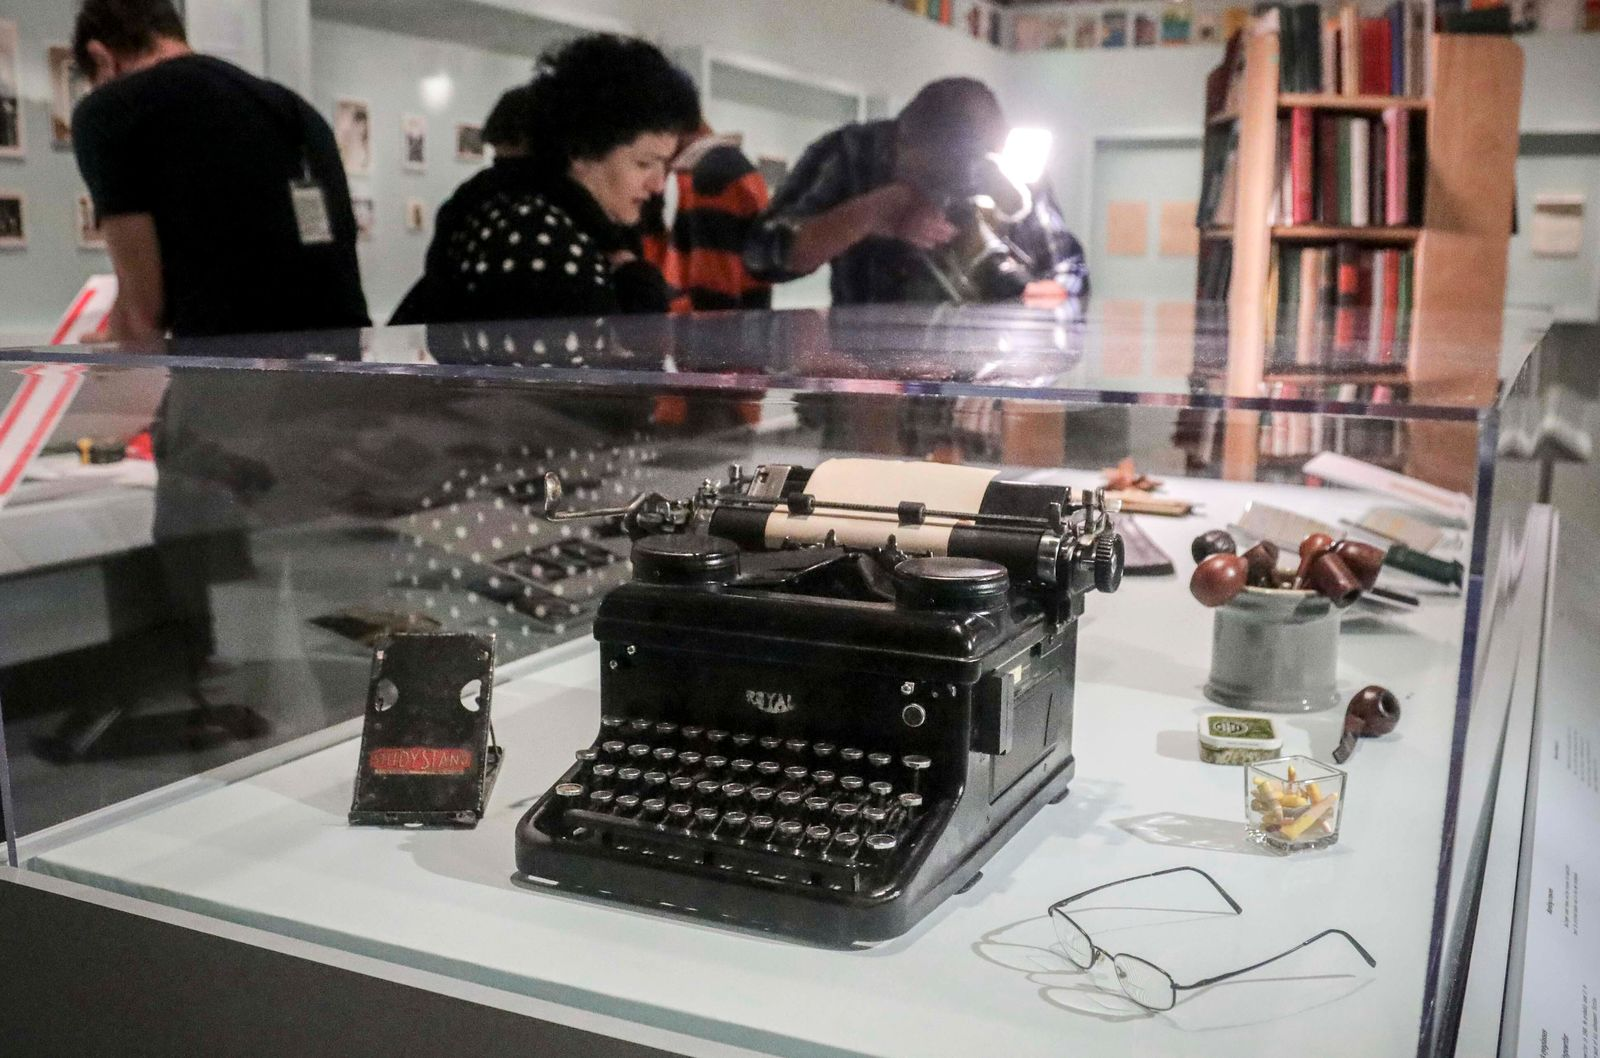 A typewriter, tobacco pipes, and eye glasses are part of a J.D. Salinger exhibit being installed at the New York Public Library, Wednesday, Oct. 16, 2019, in New York.{ } (AP Photo/Bebeto Matthews)